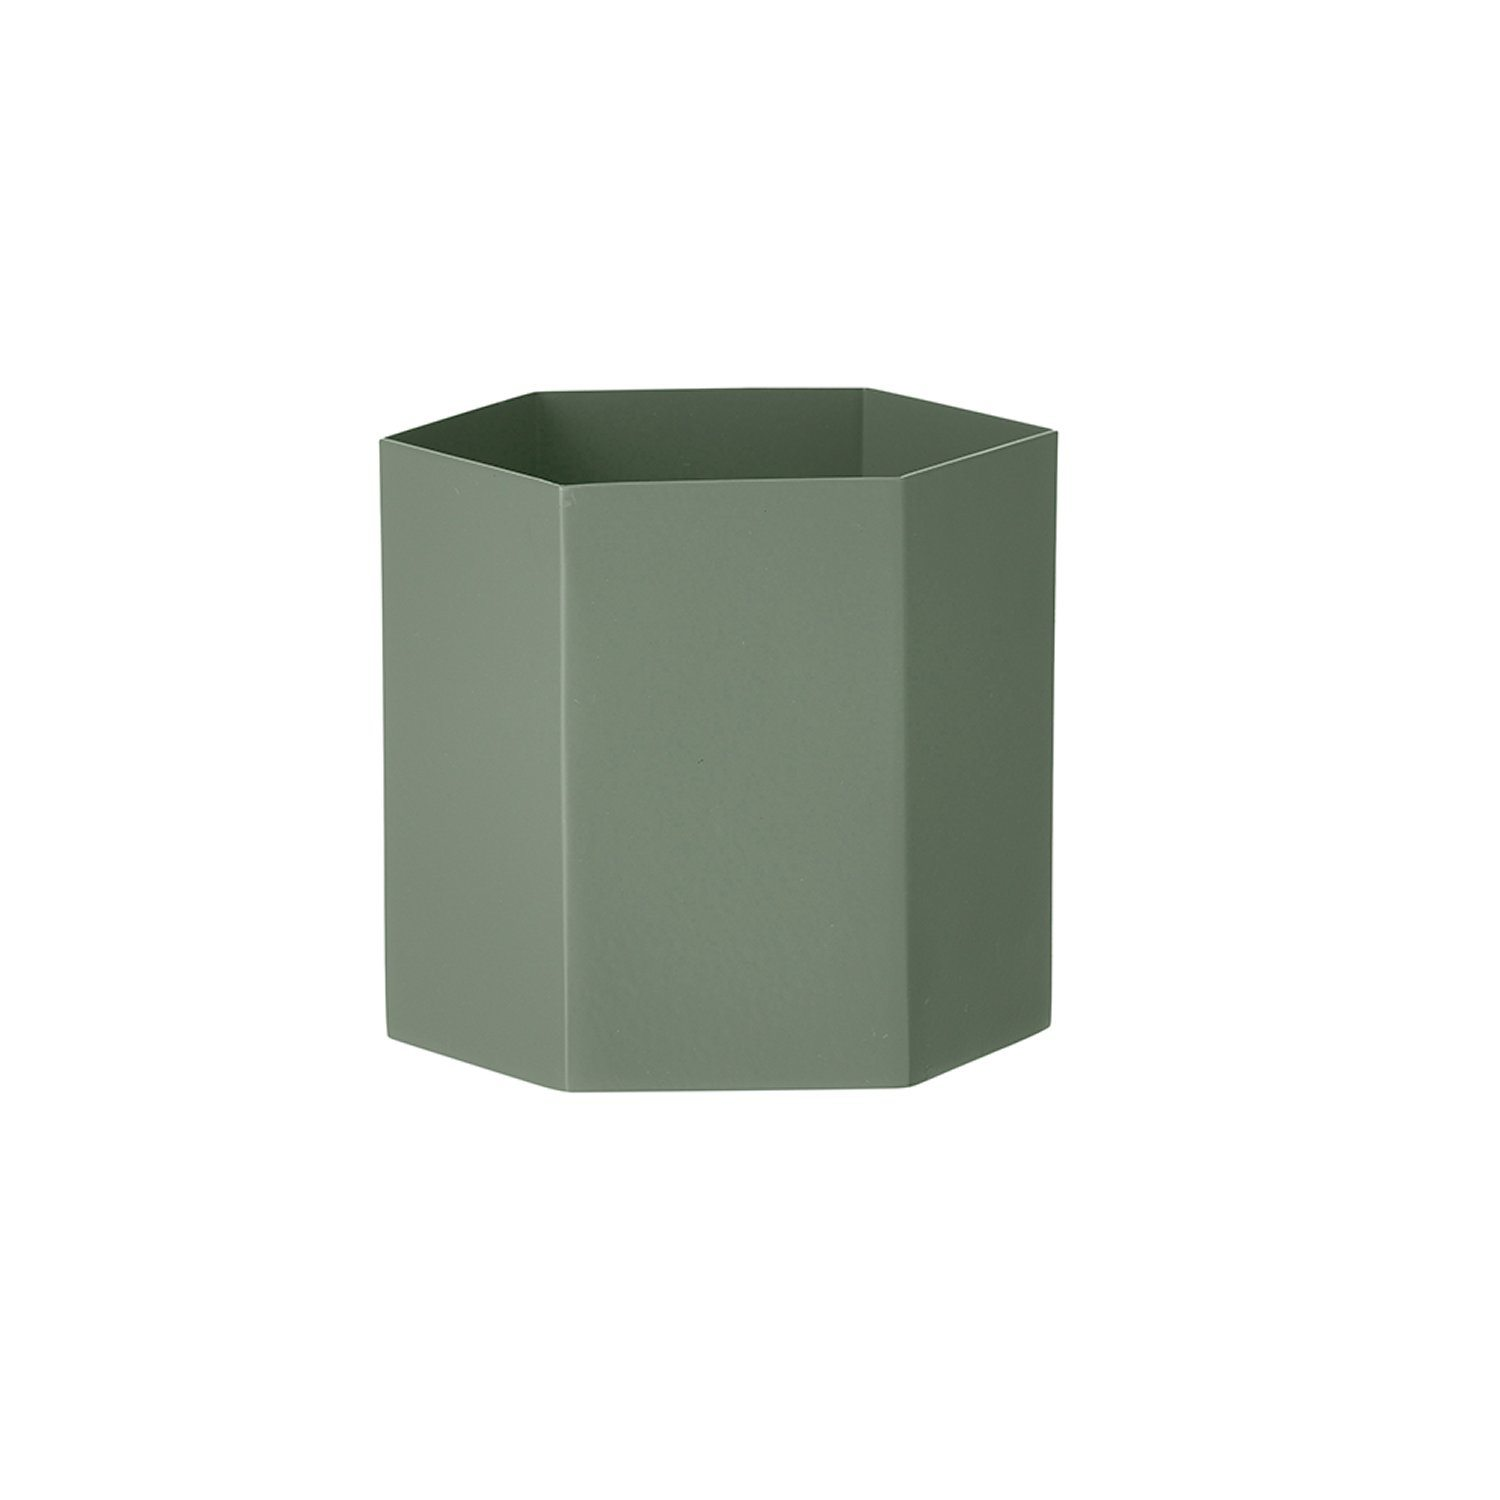 Hexagon potte L, dusty green